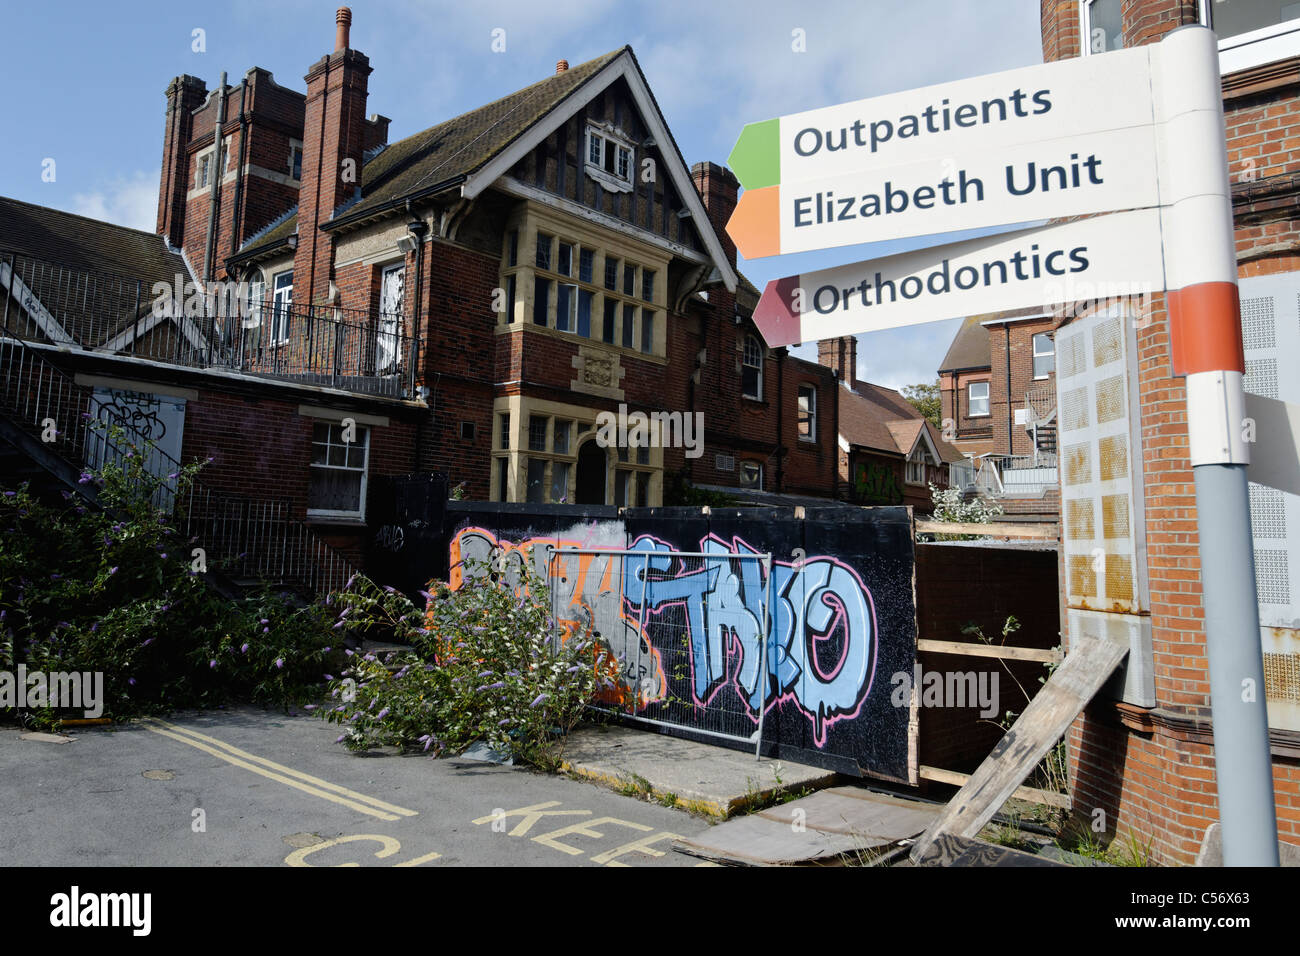 The derelict Royal Alexandra Hospital, Brighton, awaiting redevelopment. - Stock Image